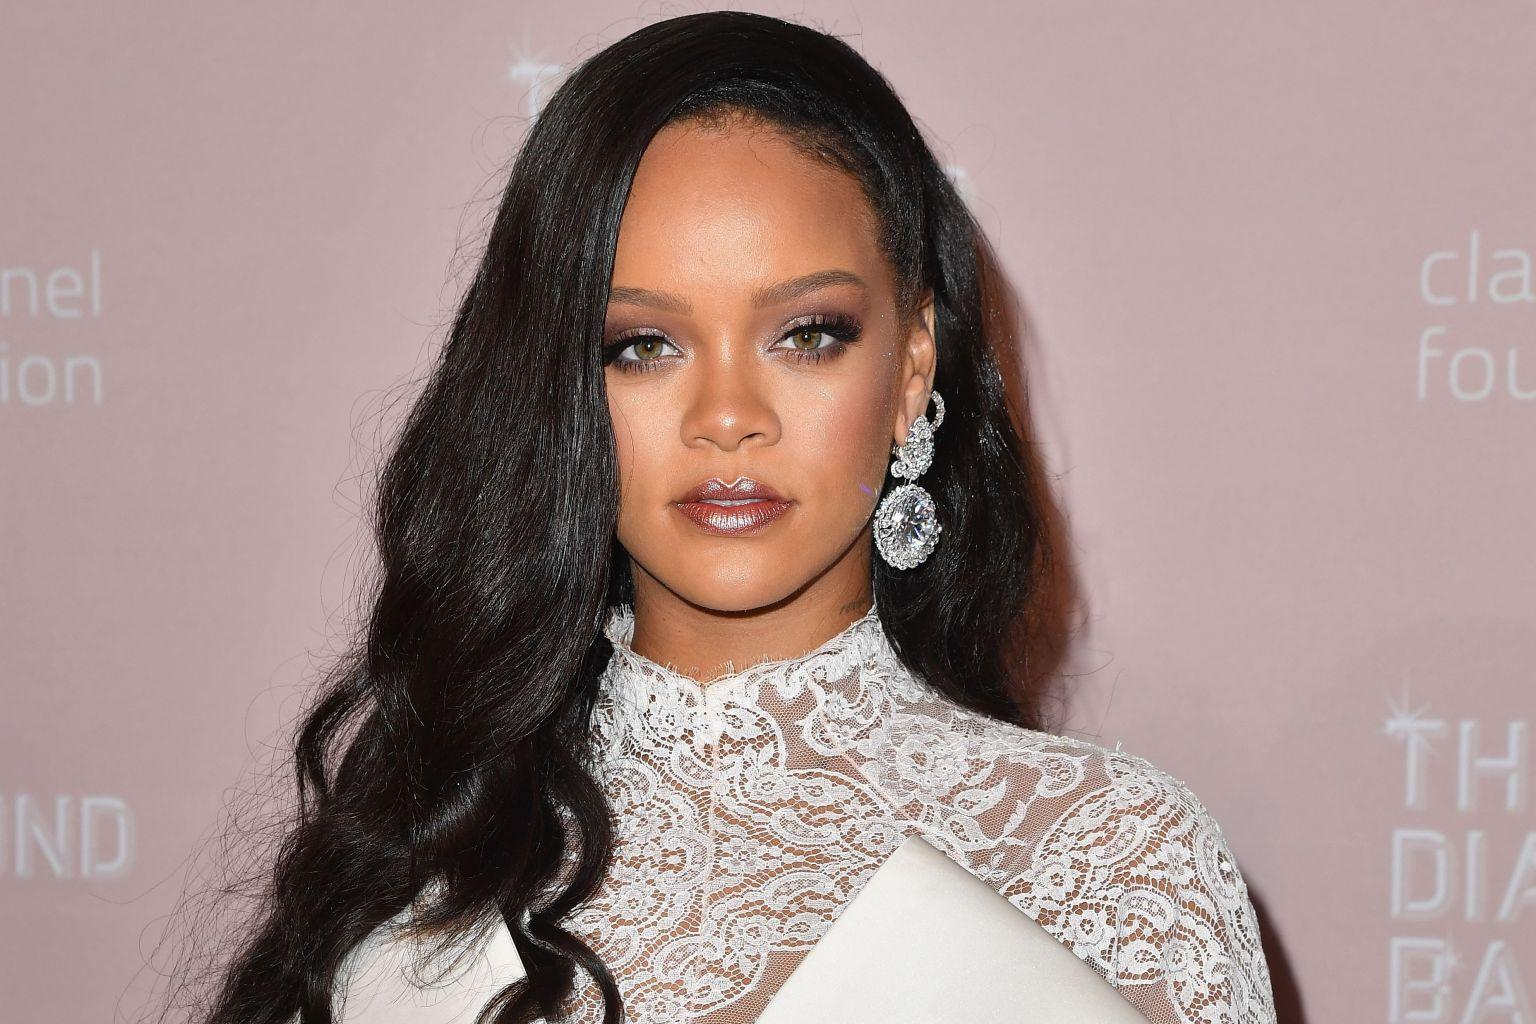 Rihanna Sent Her Father A Ventilator After COVID-19 Diagnosis - He 'Thought He Would Die!'